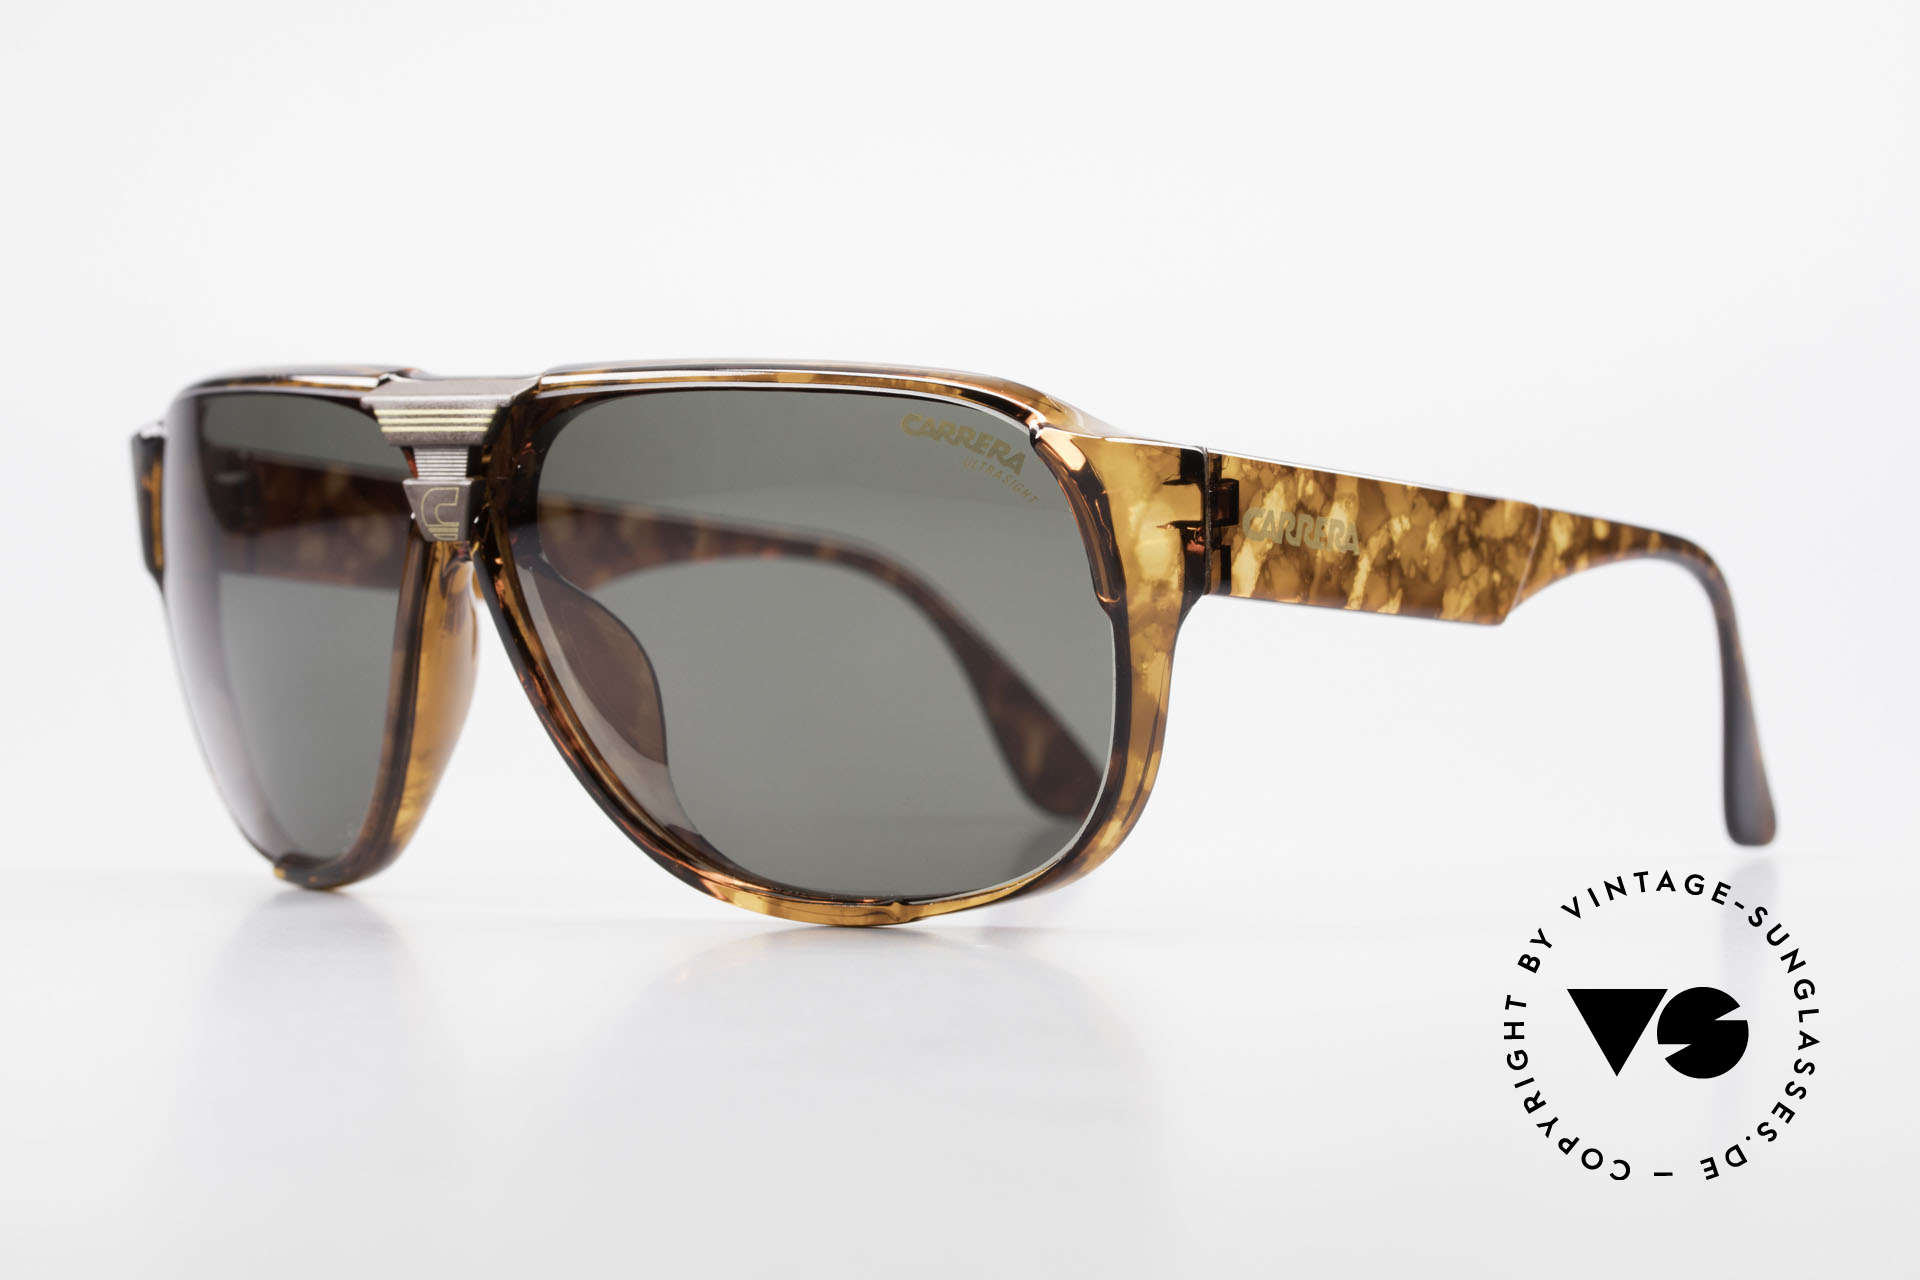 Carrera 5431 80's Alpine Changer Sunglasses, state-of-the-art lenses (2 sets) & with orig. case, Made for Men